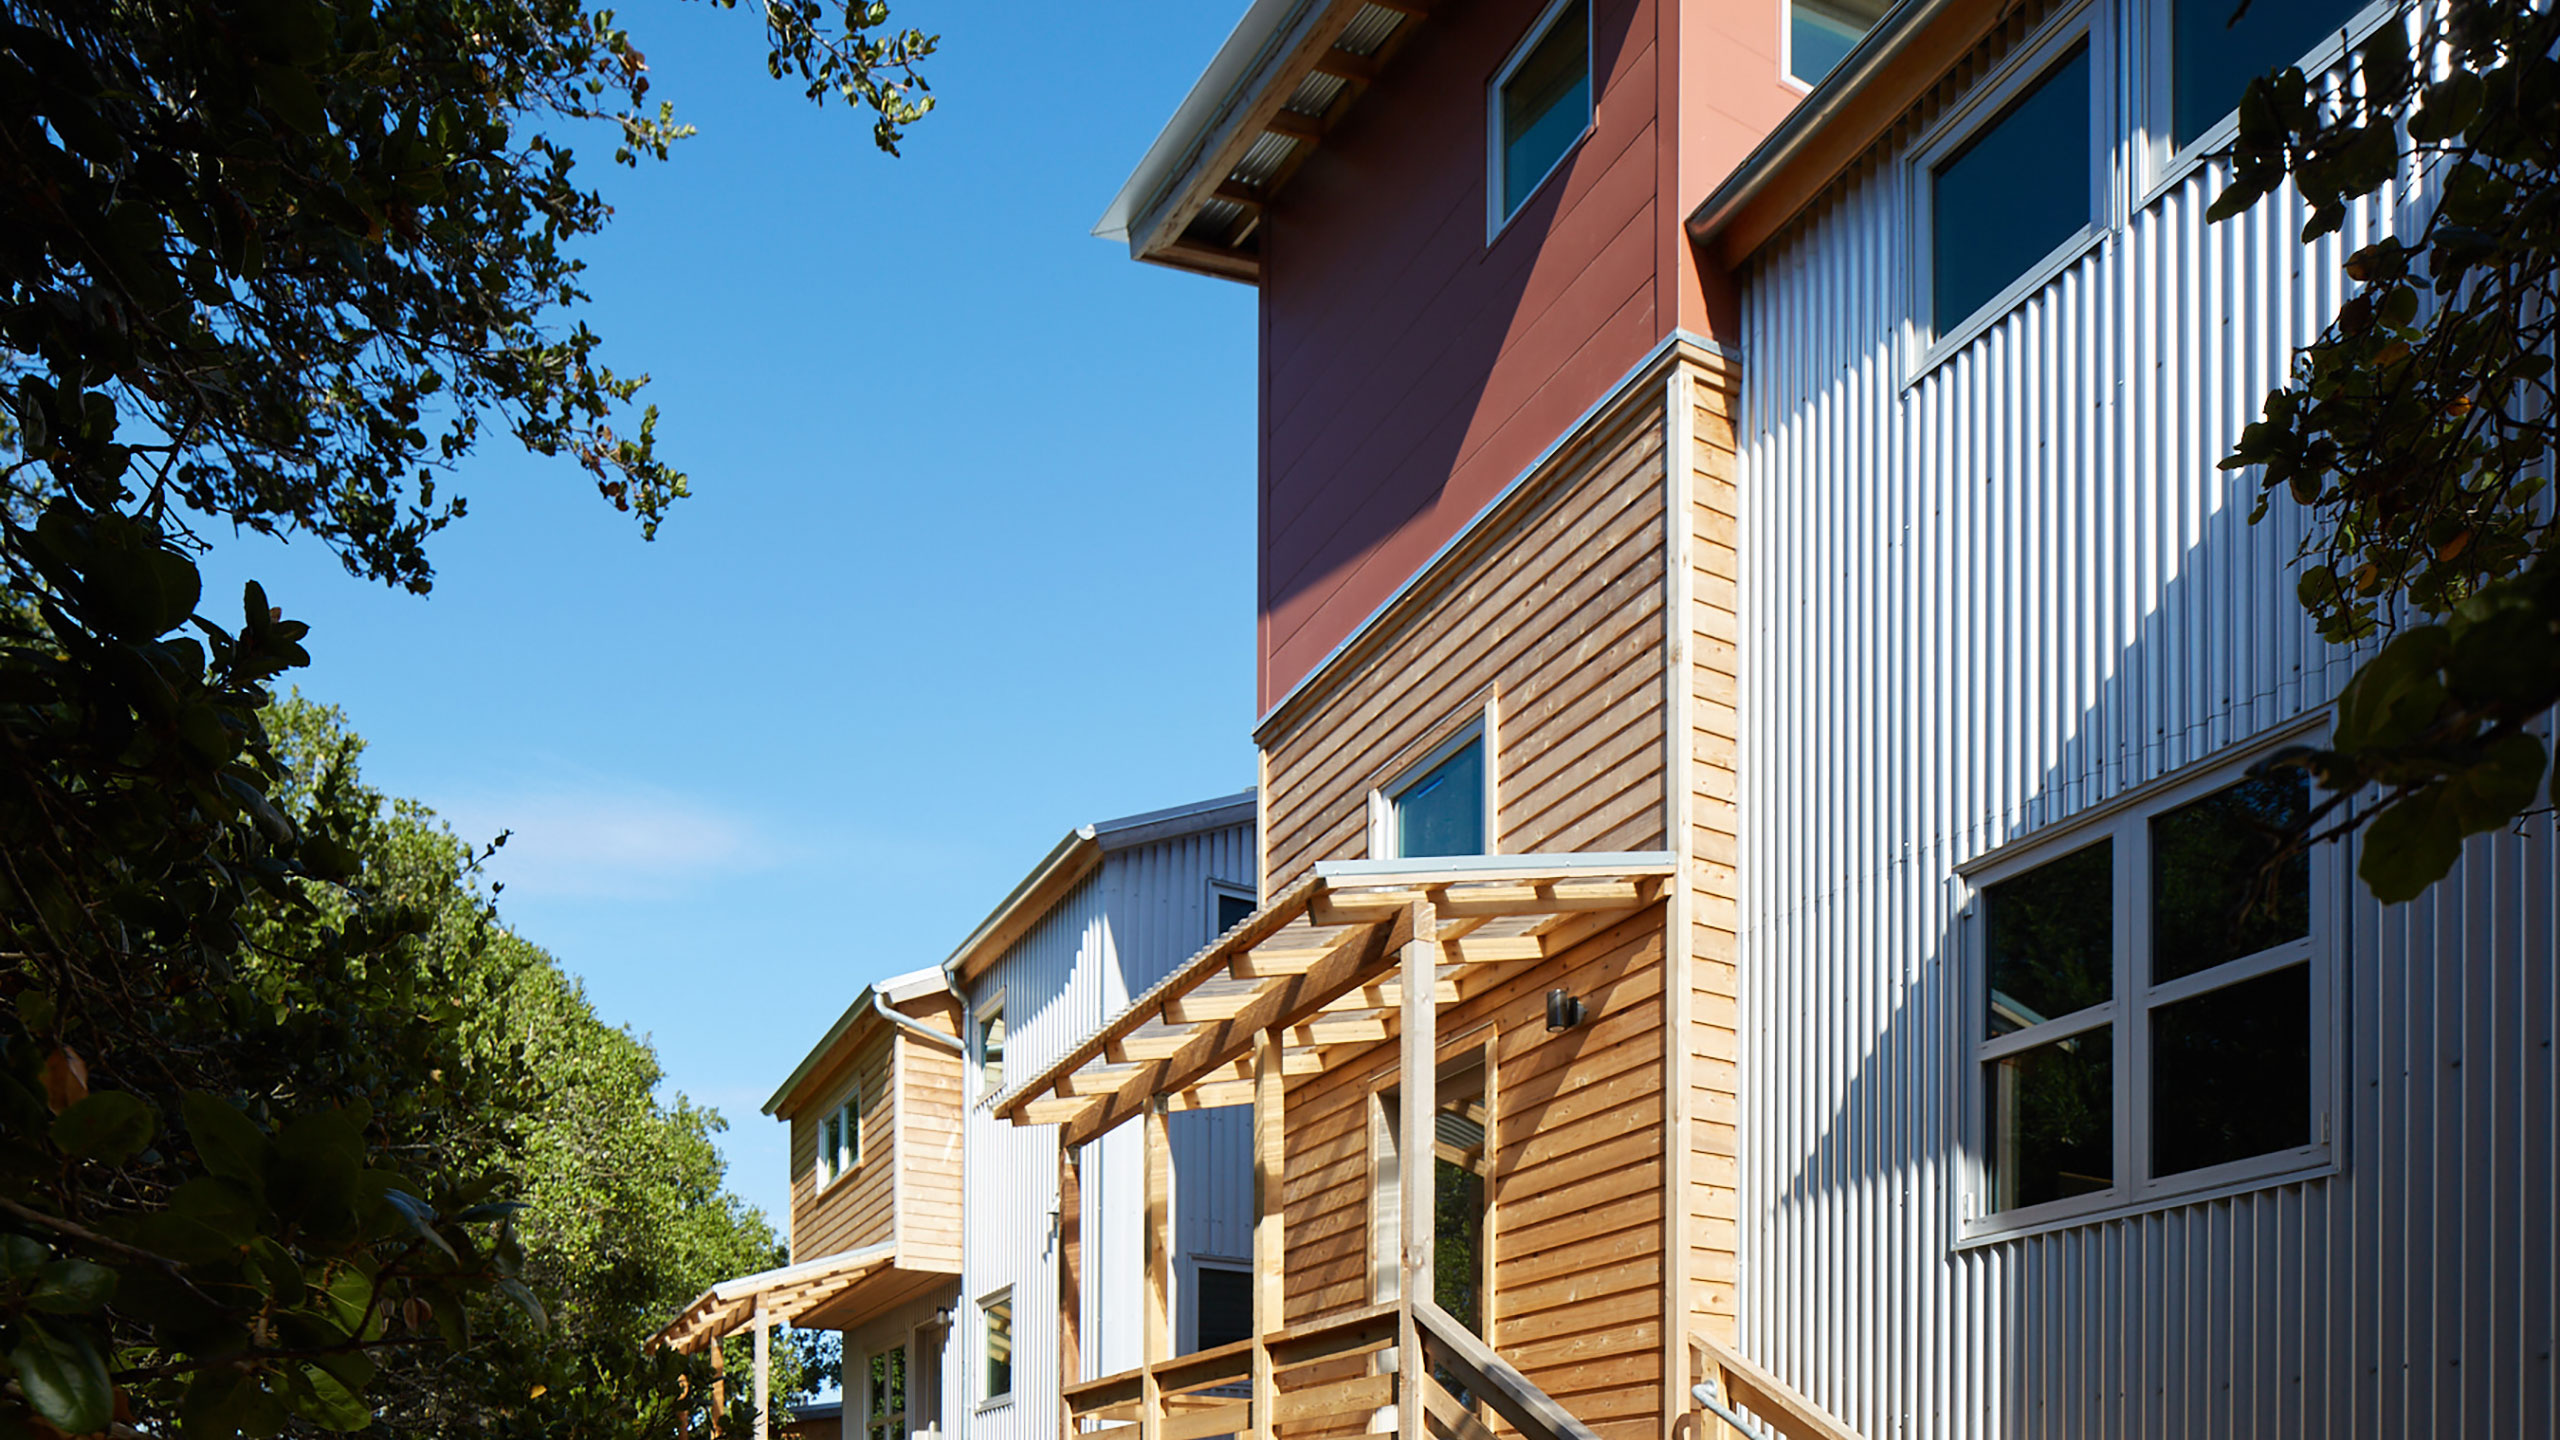 Sustainable-Architecture-Sonoma-County-Keller-Court-wood-siding-corrugated-metal-siding